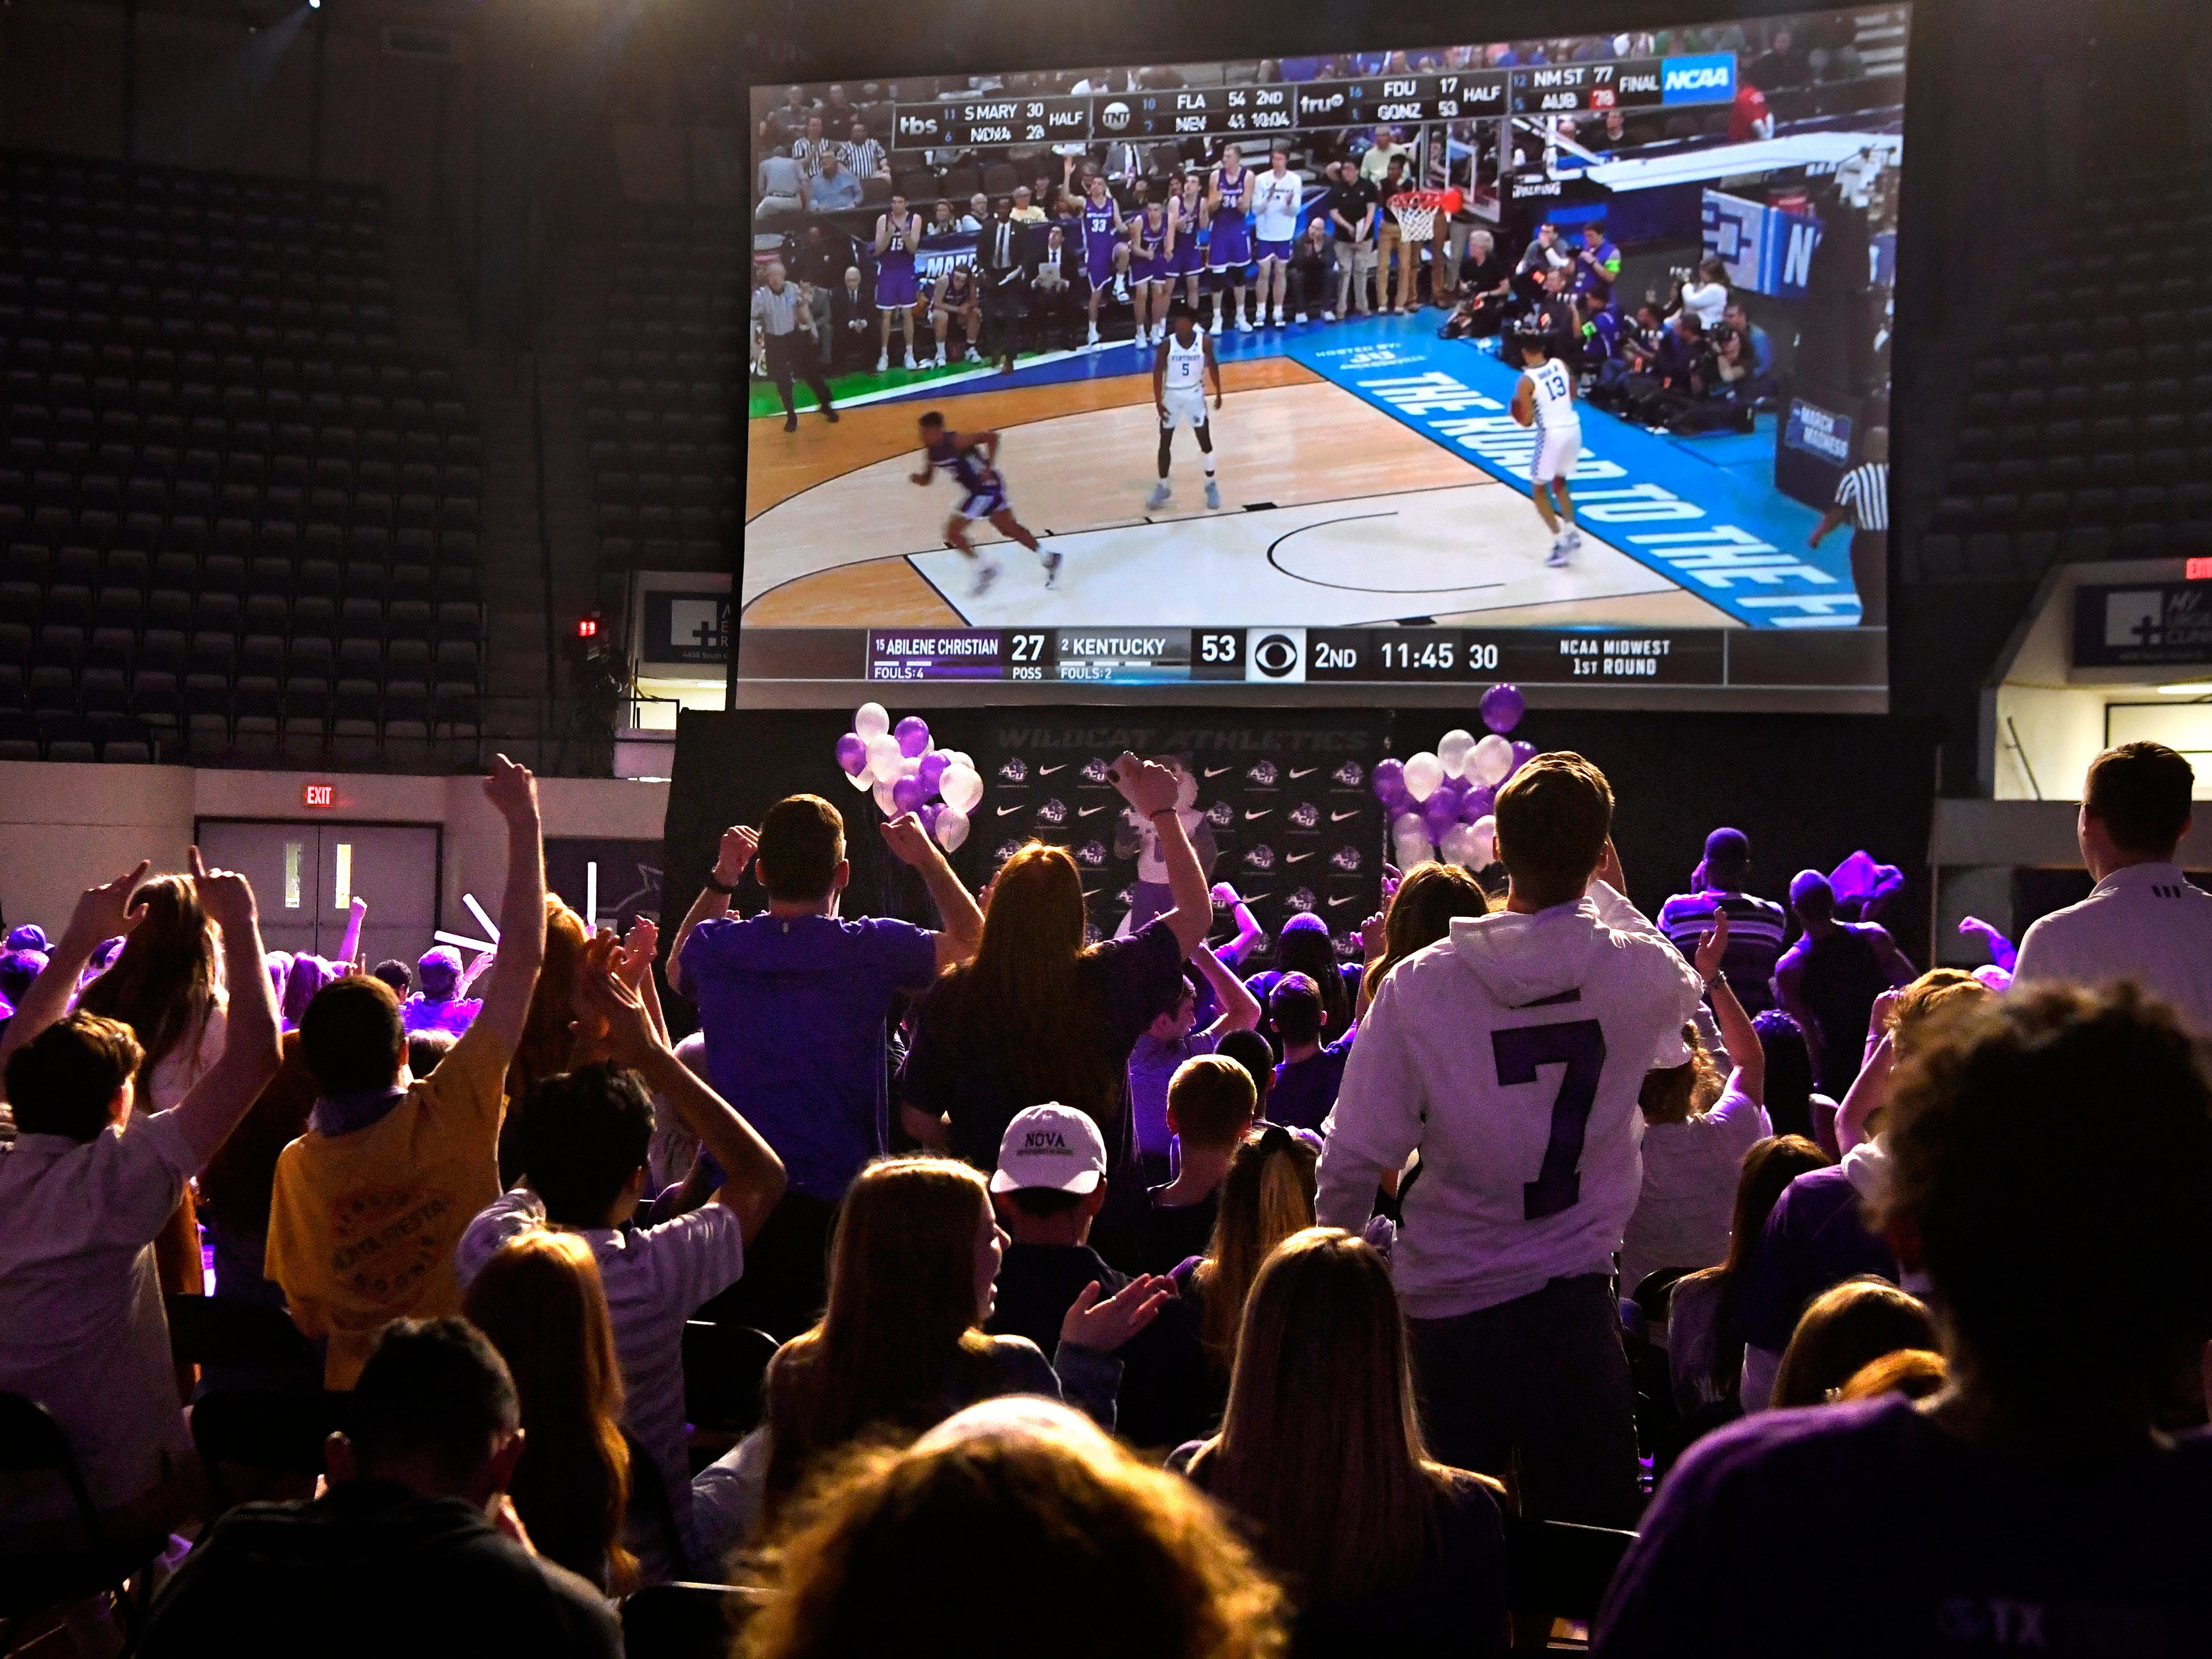 Fans cheer a Wildcat basket during a watch party at Abilene Christian University's Moody Coliseum Thursday March 2,1 2019. ACU took on basketball powerhouse University of Kentucky in their first-ever trip to the NCAA Tournament. ACU lost to No. 2 UK, 79-44.